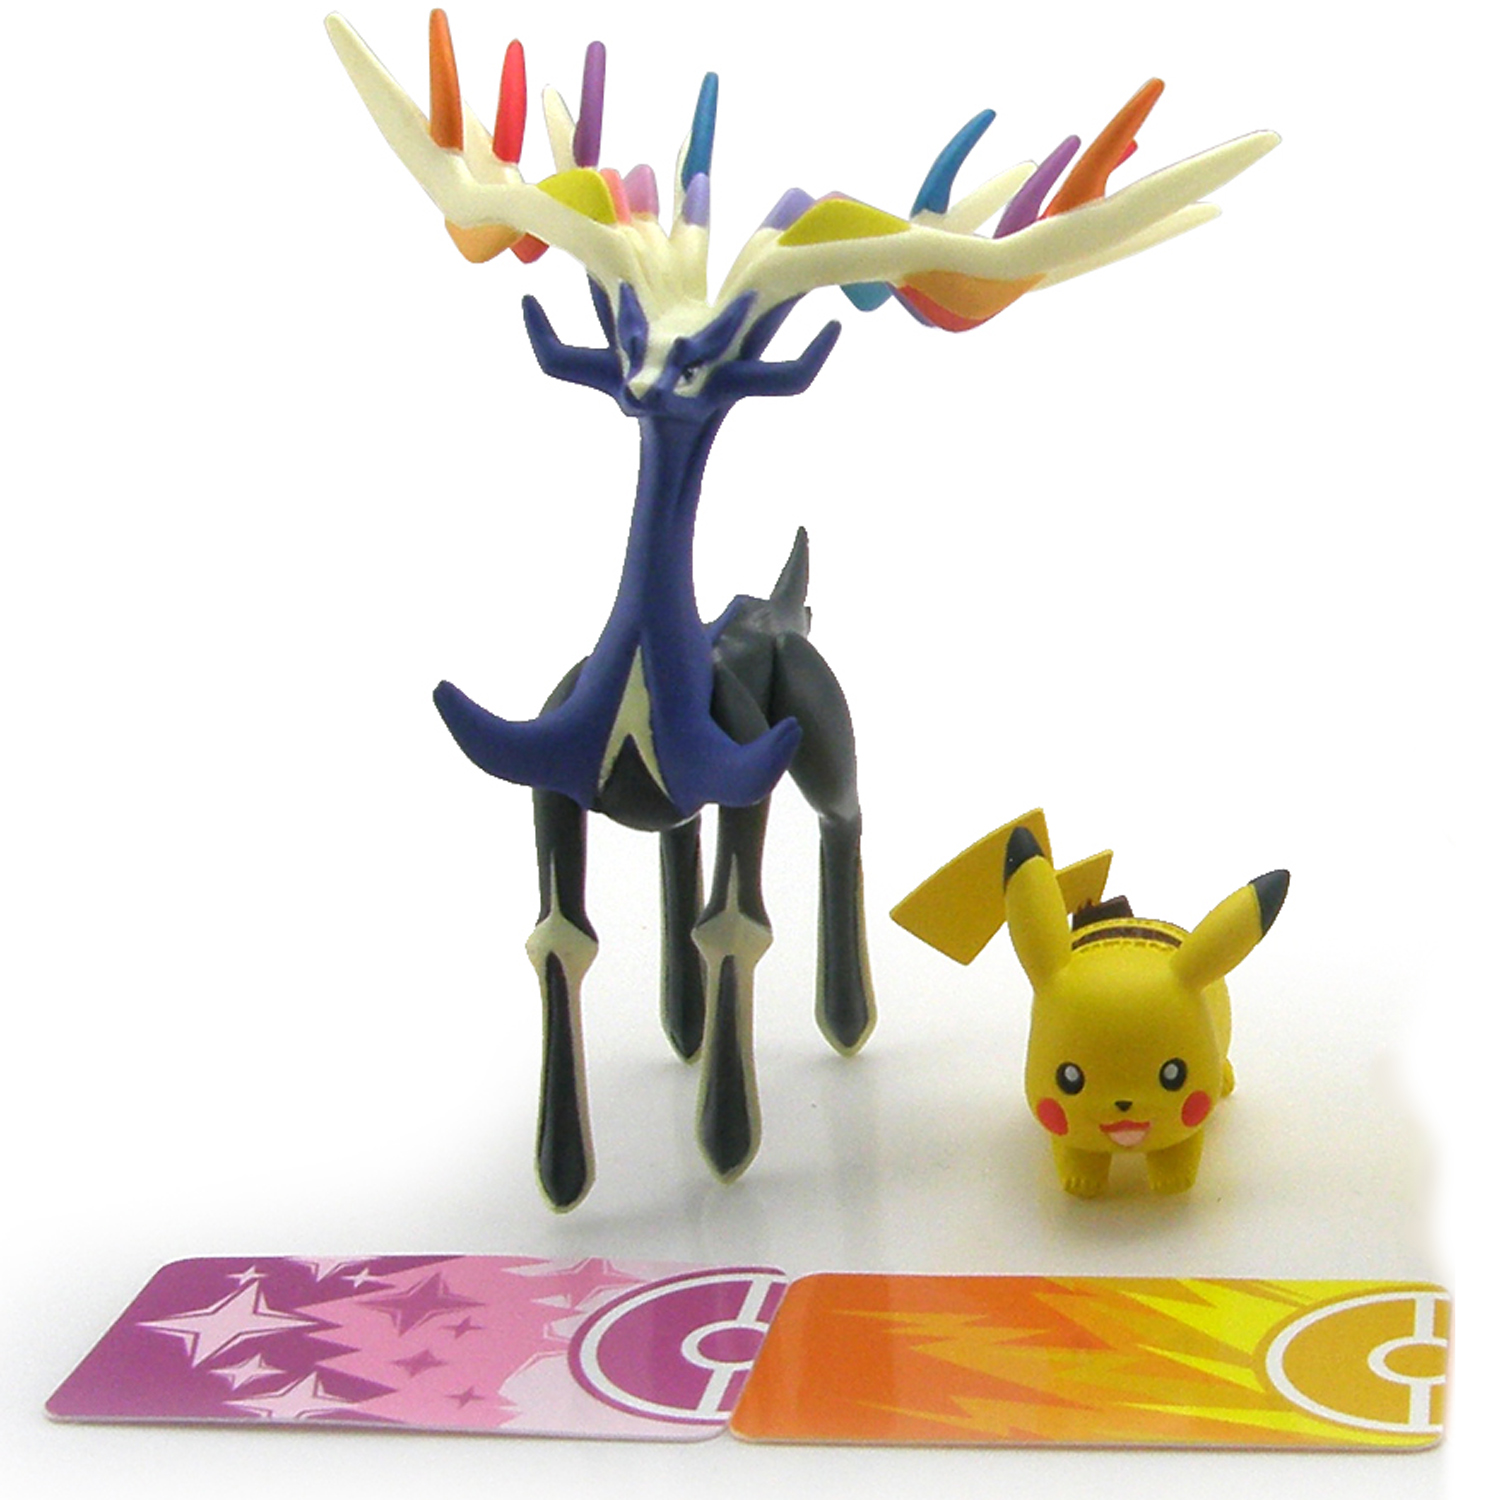 Pokemon Toys - Pikachu & Xerneas Two-Pack at ToyStop